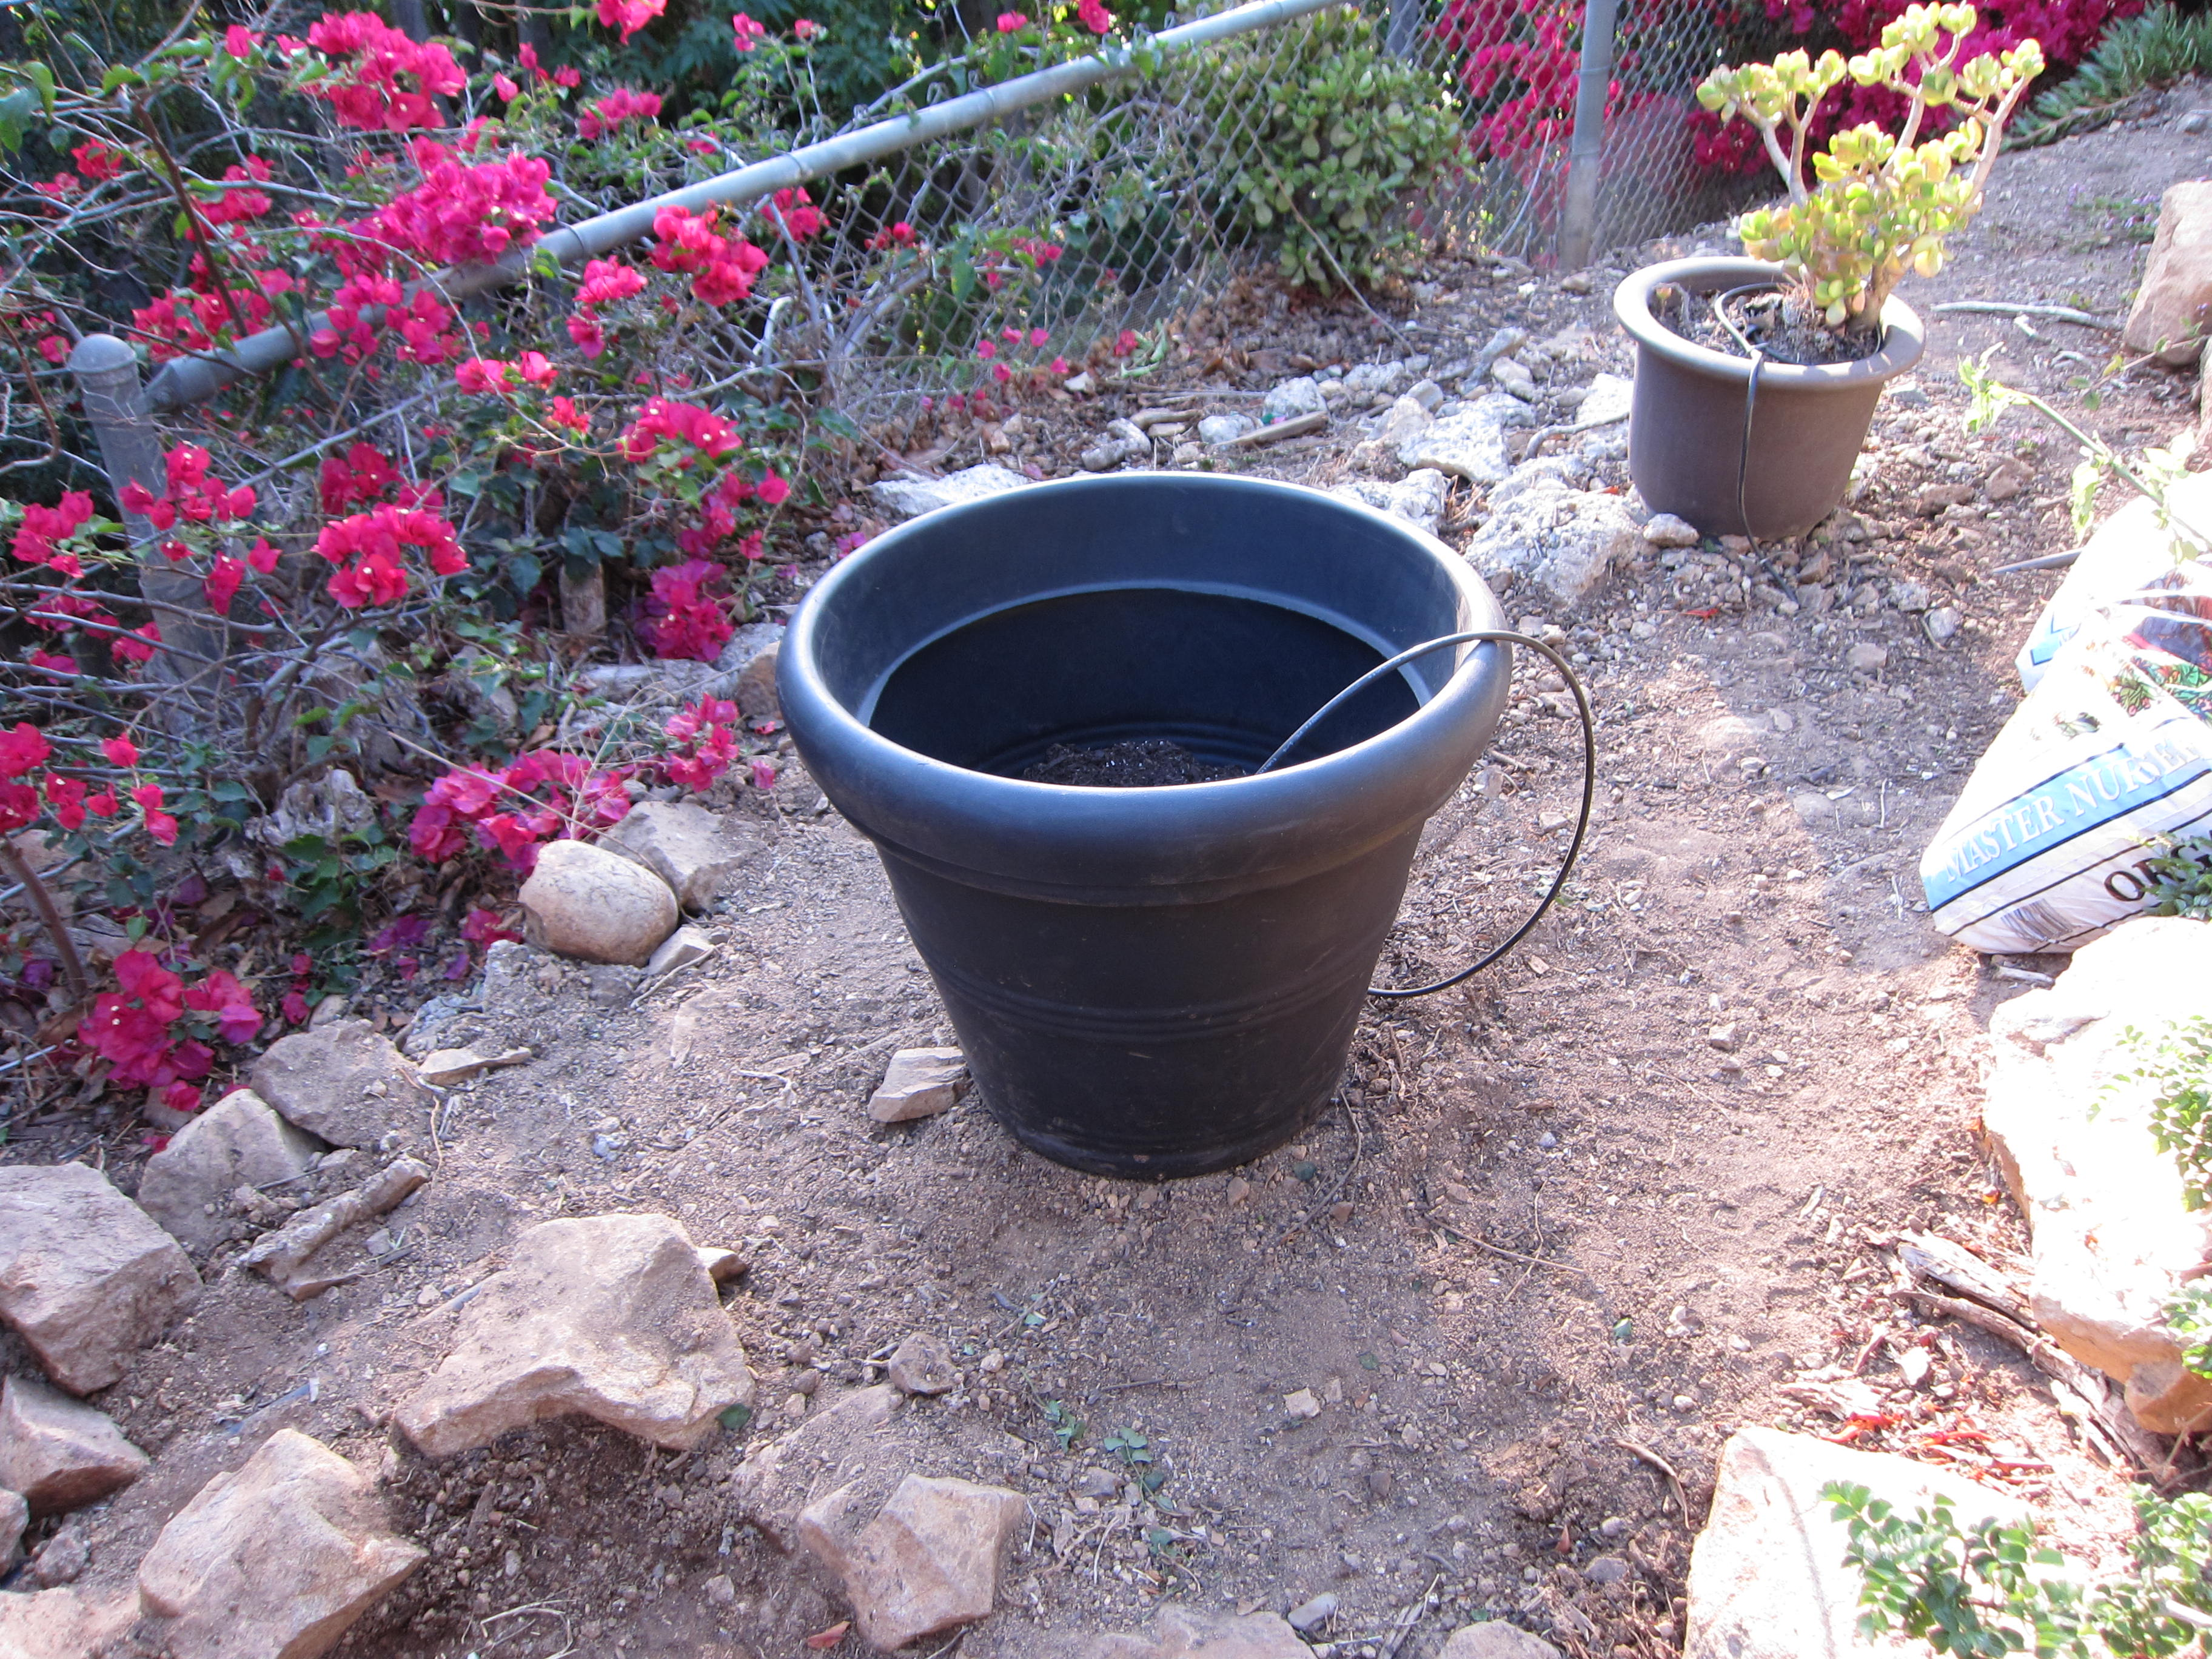 A large pot for potatoes is only filled a third of the way. We buried the seed potatoes and the homeowner will add soil as they grow, until the pot is full. Drip irrigation will keep soil moist as the potatoes grow.